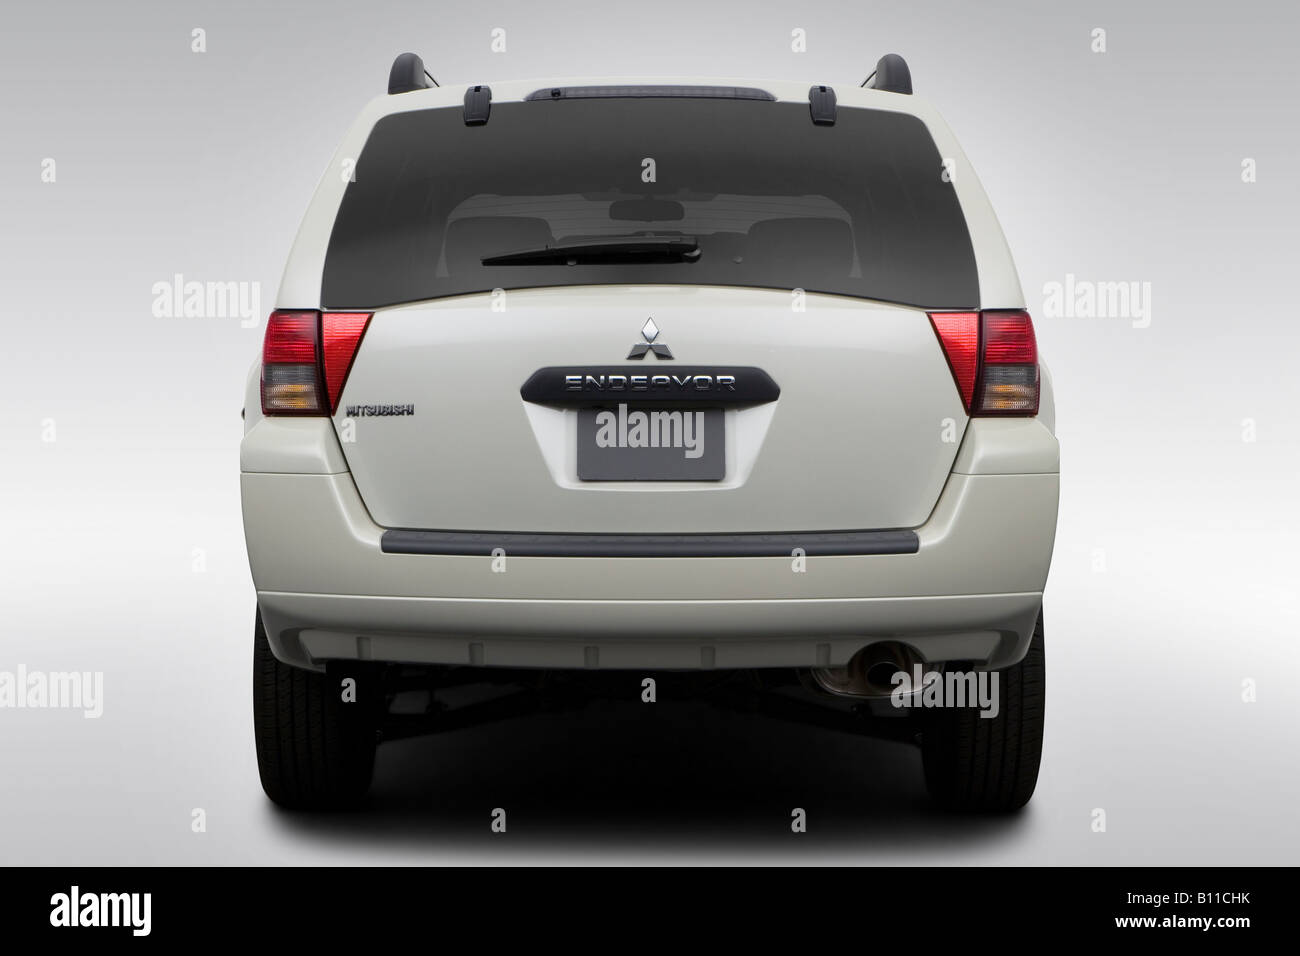 2008 Mitsubishi Endeavor Ls In White Low Wide Rear Stock Photo